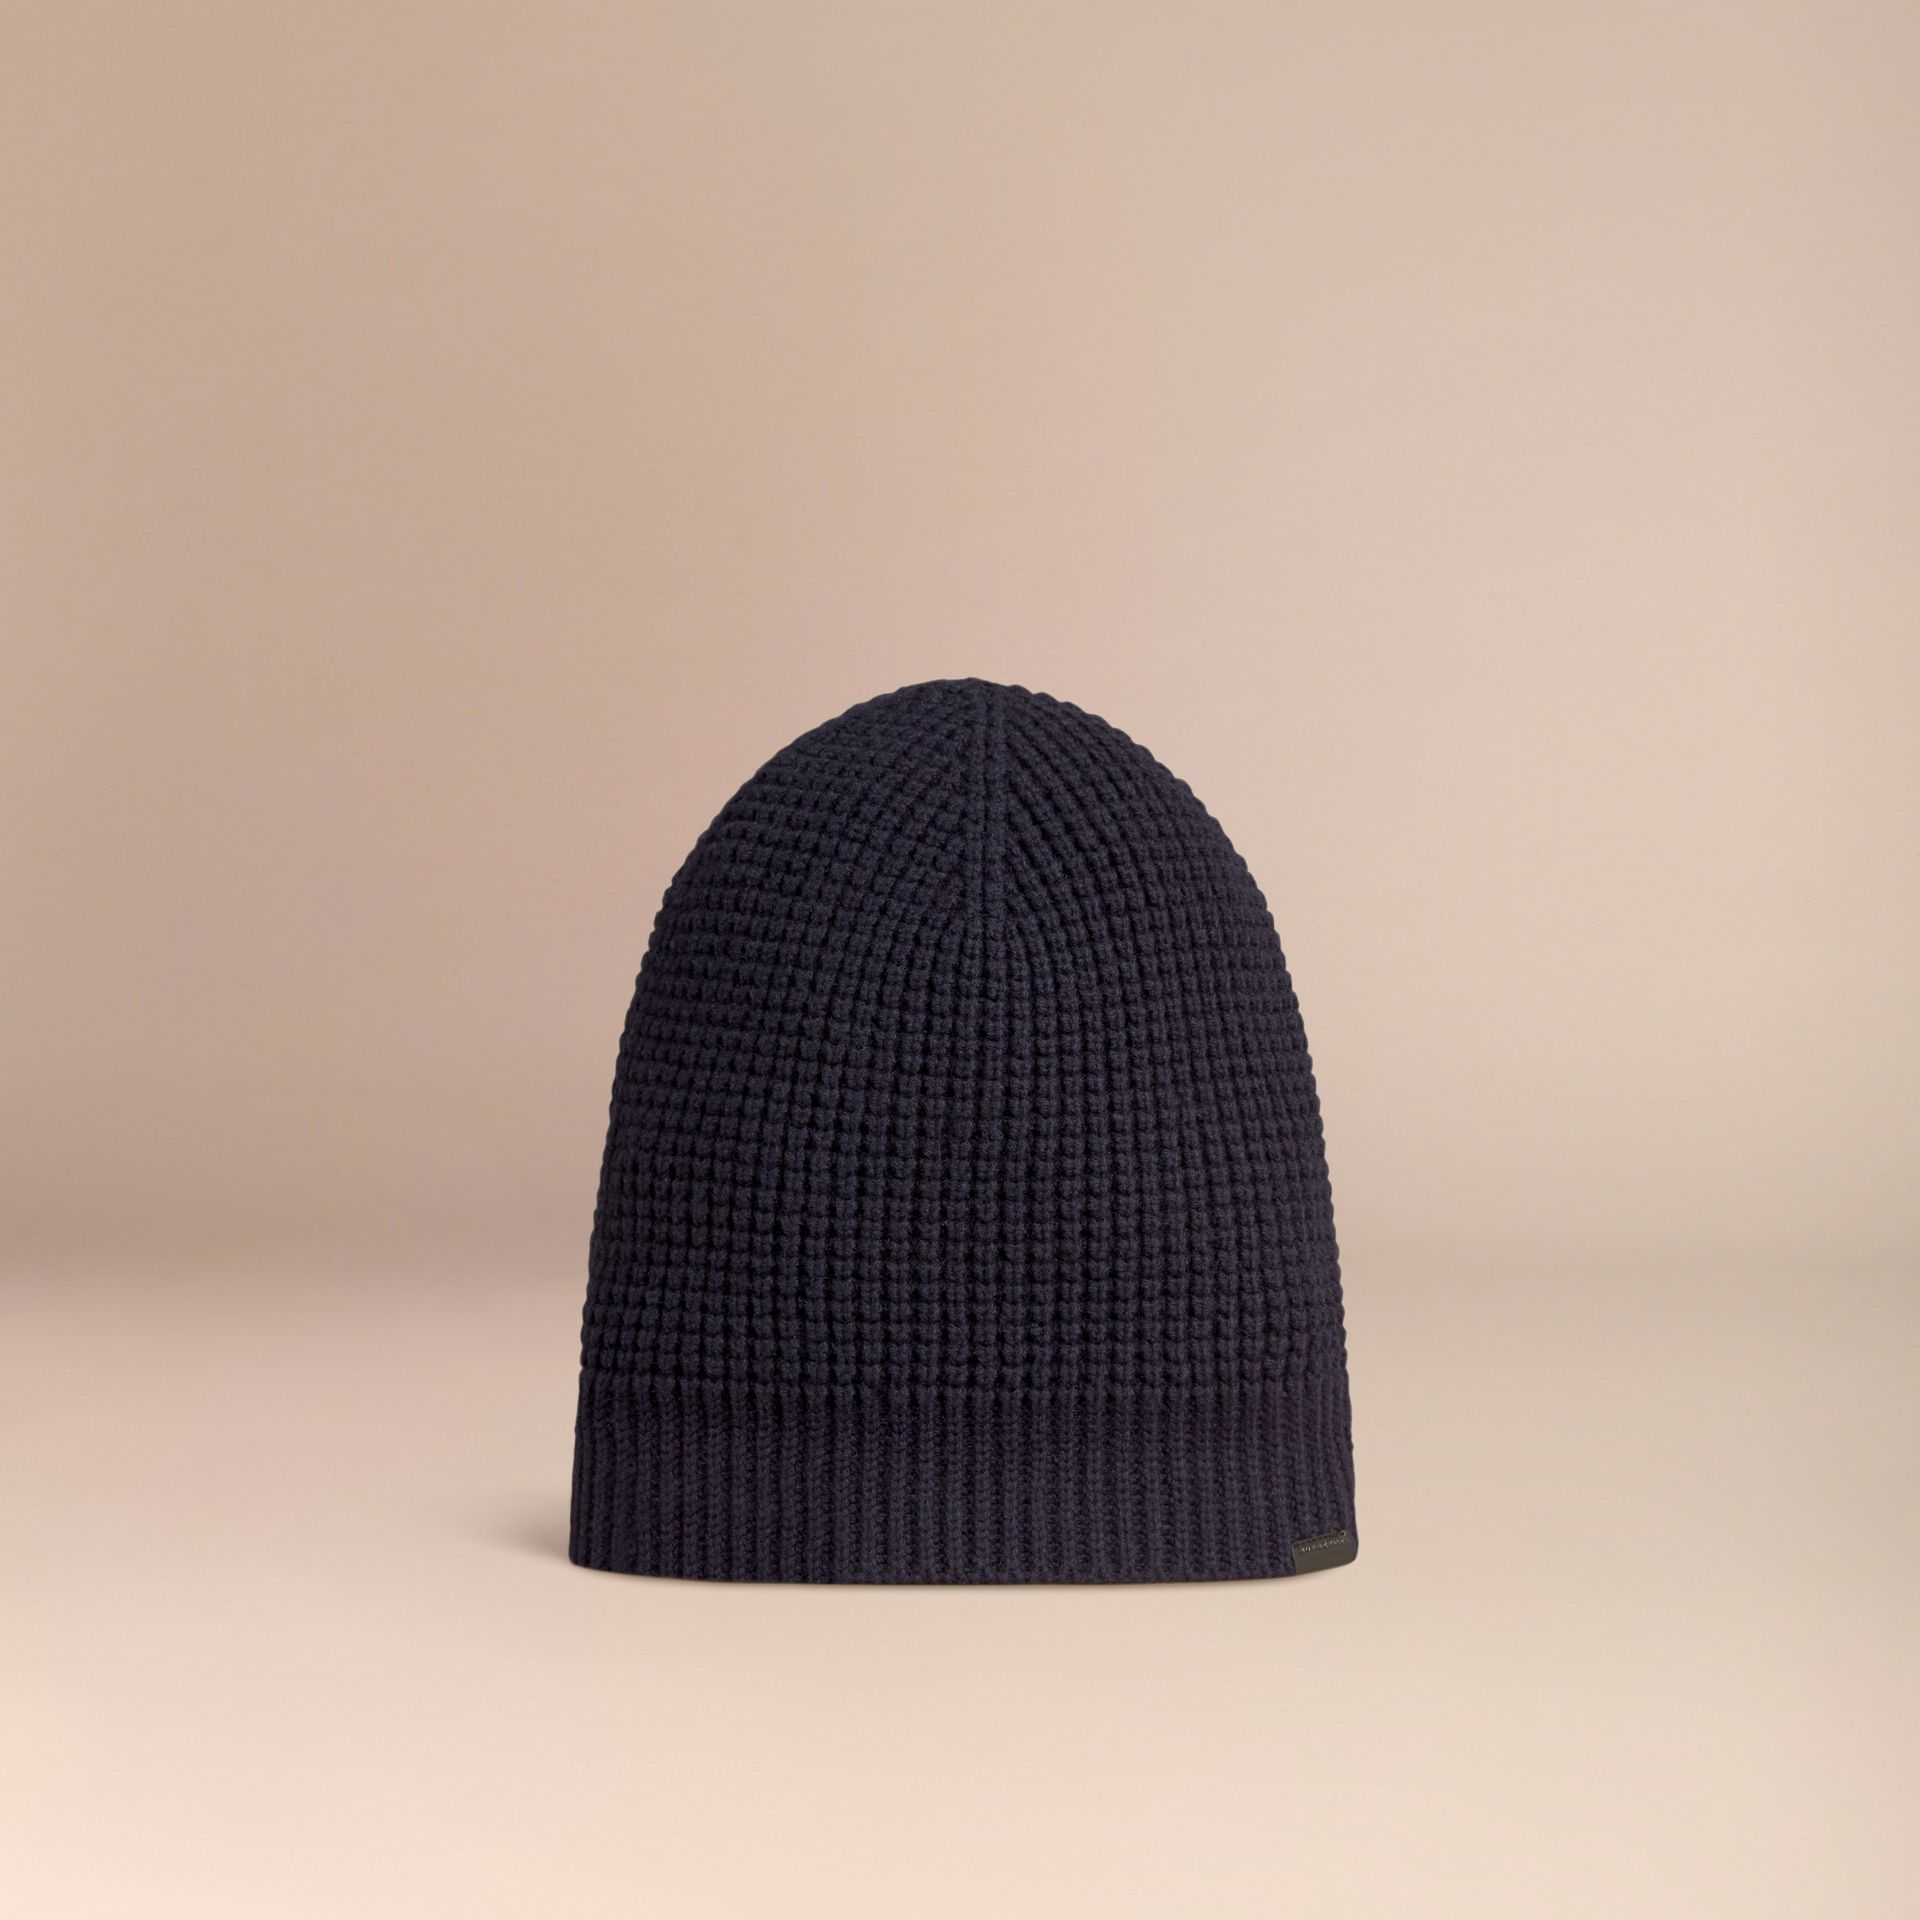 Cashmere Blend Waffle Knit Beanie in Dark Navy - Men | Burberry - gallery image 3